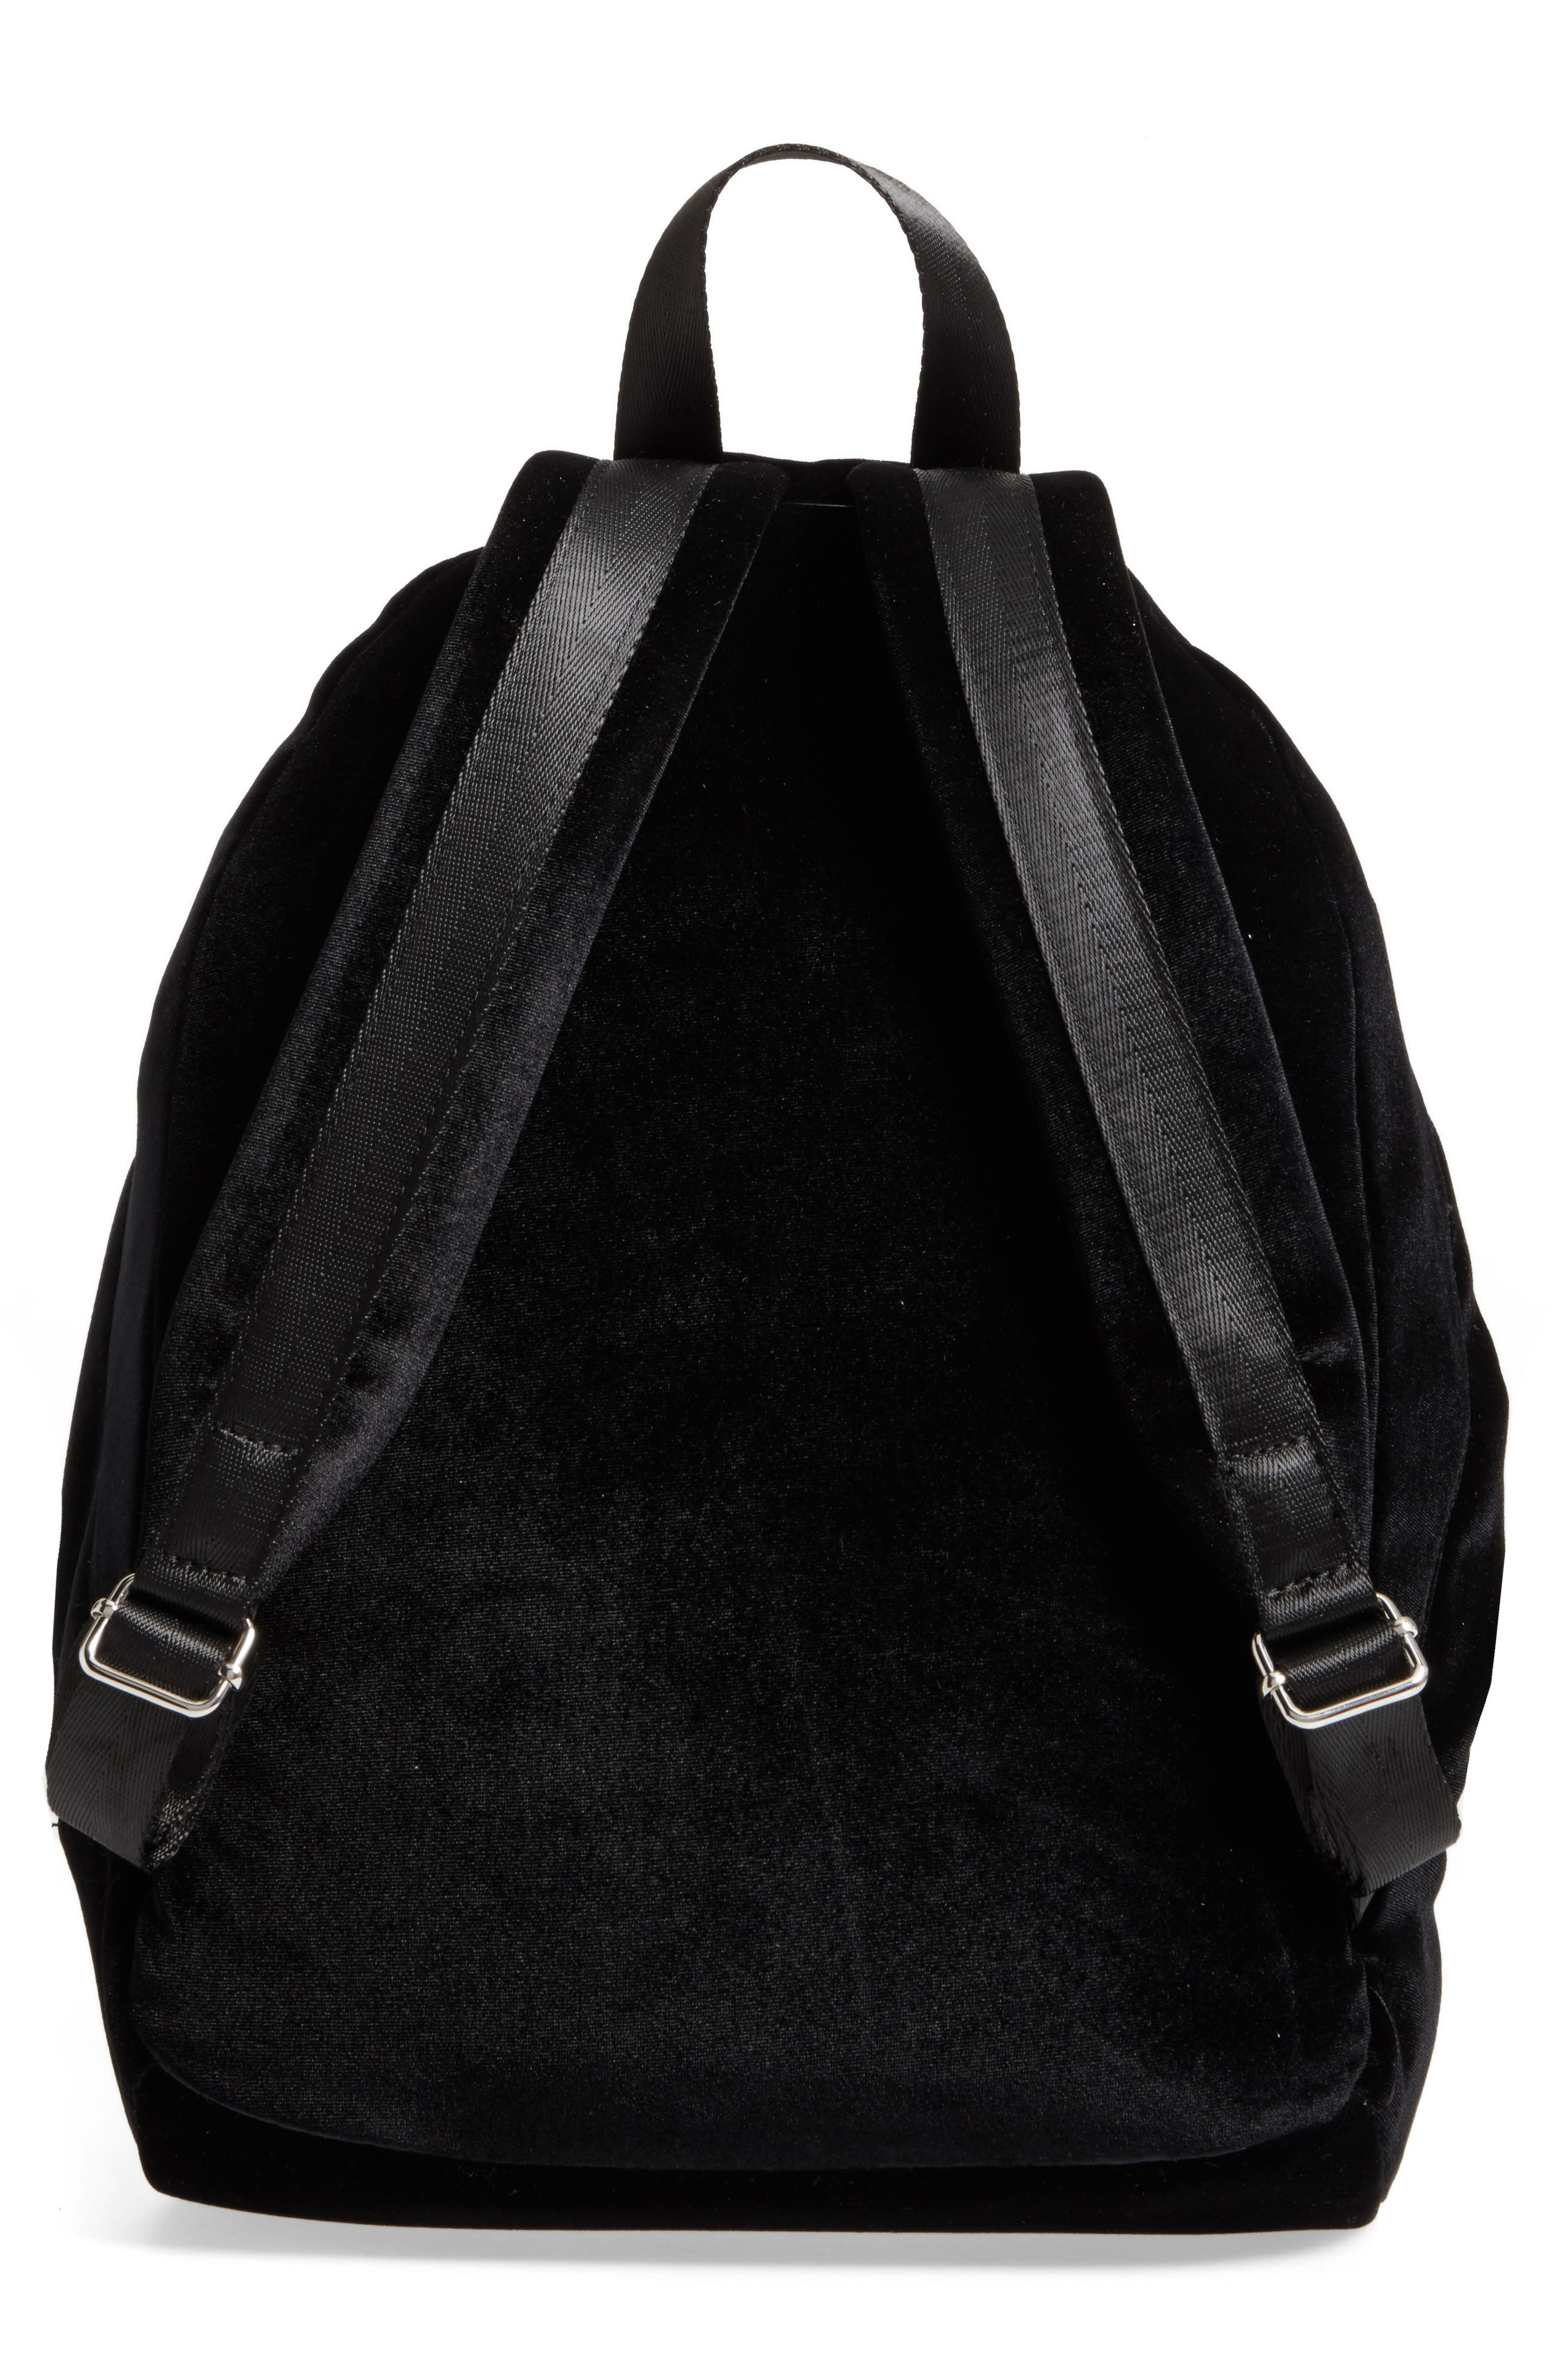 Velvet Backpack,                             Alternate thumbnail 3, color,                             Black